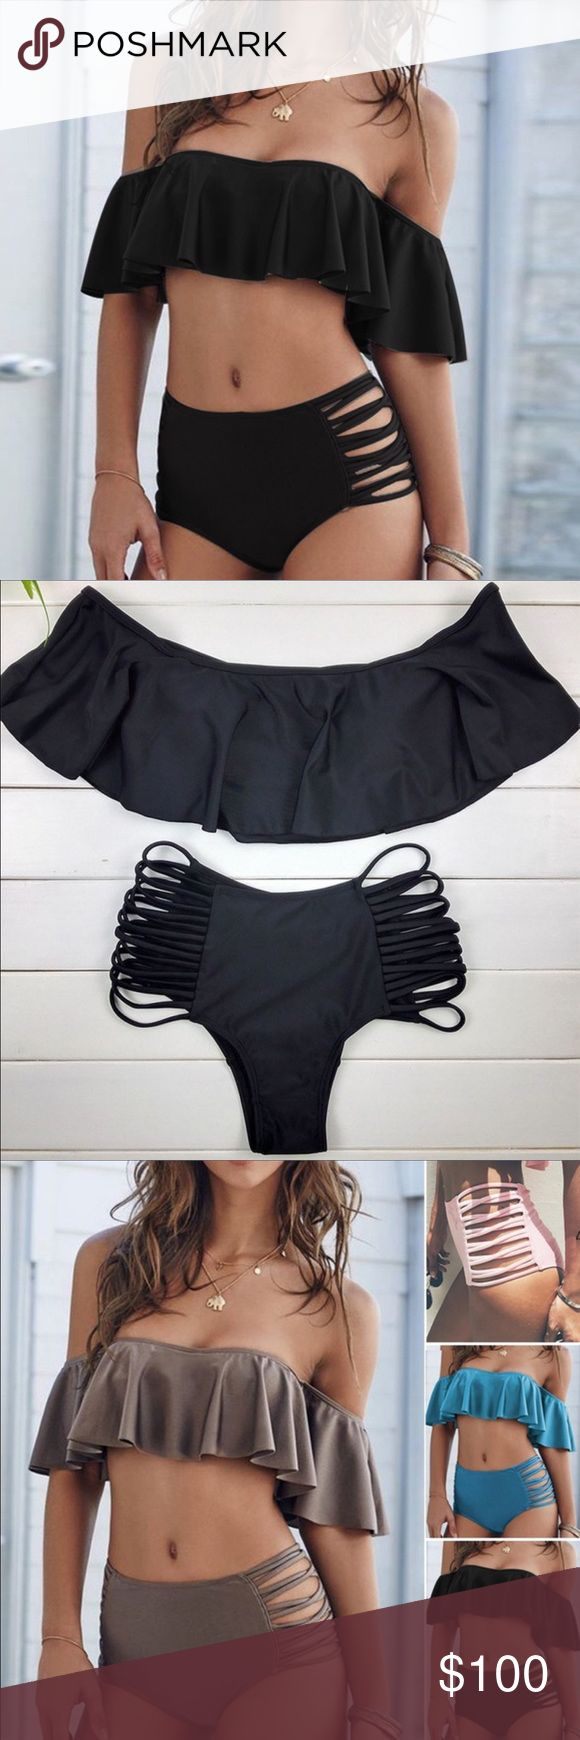 Shoulder off Sexy Swimsuit High Waisted Bikini ‼️COMING SOON ‼️Sexy shoulder off Hight waist bikini set.Hight quality ,brand new.‼️I will low the price when is available‼️ Swim Bikinis